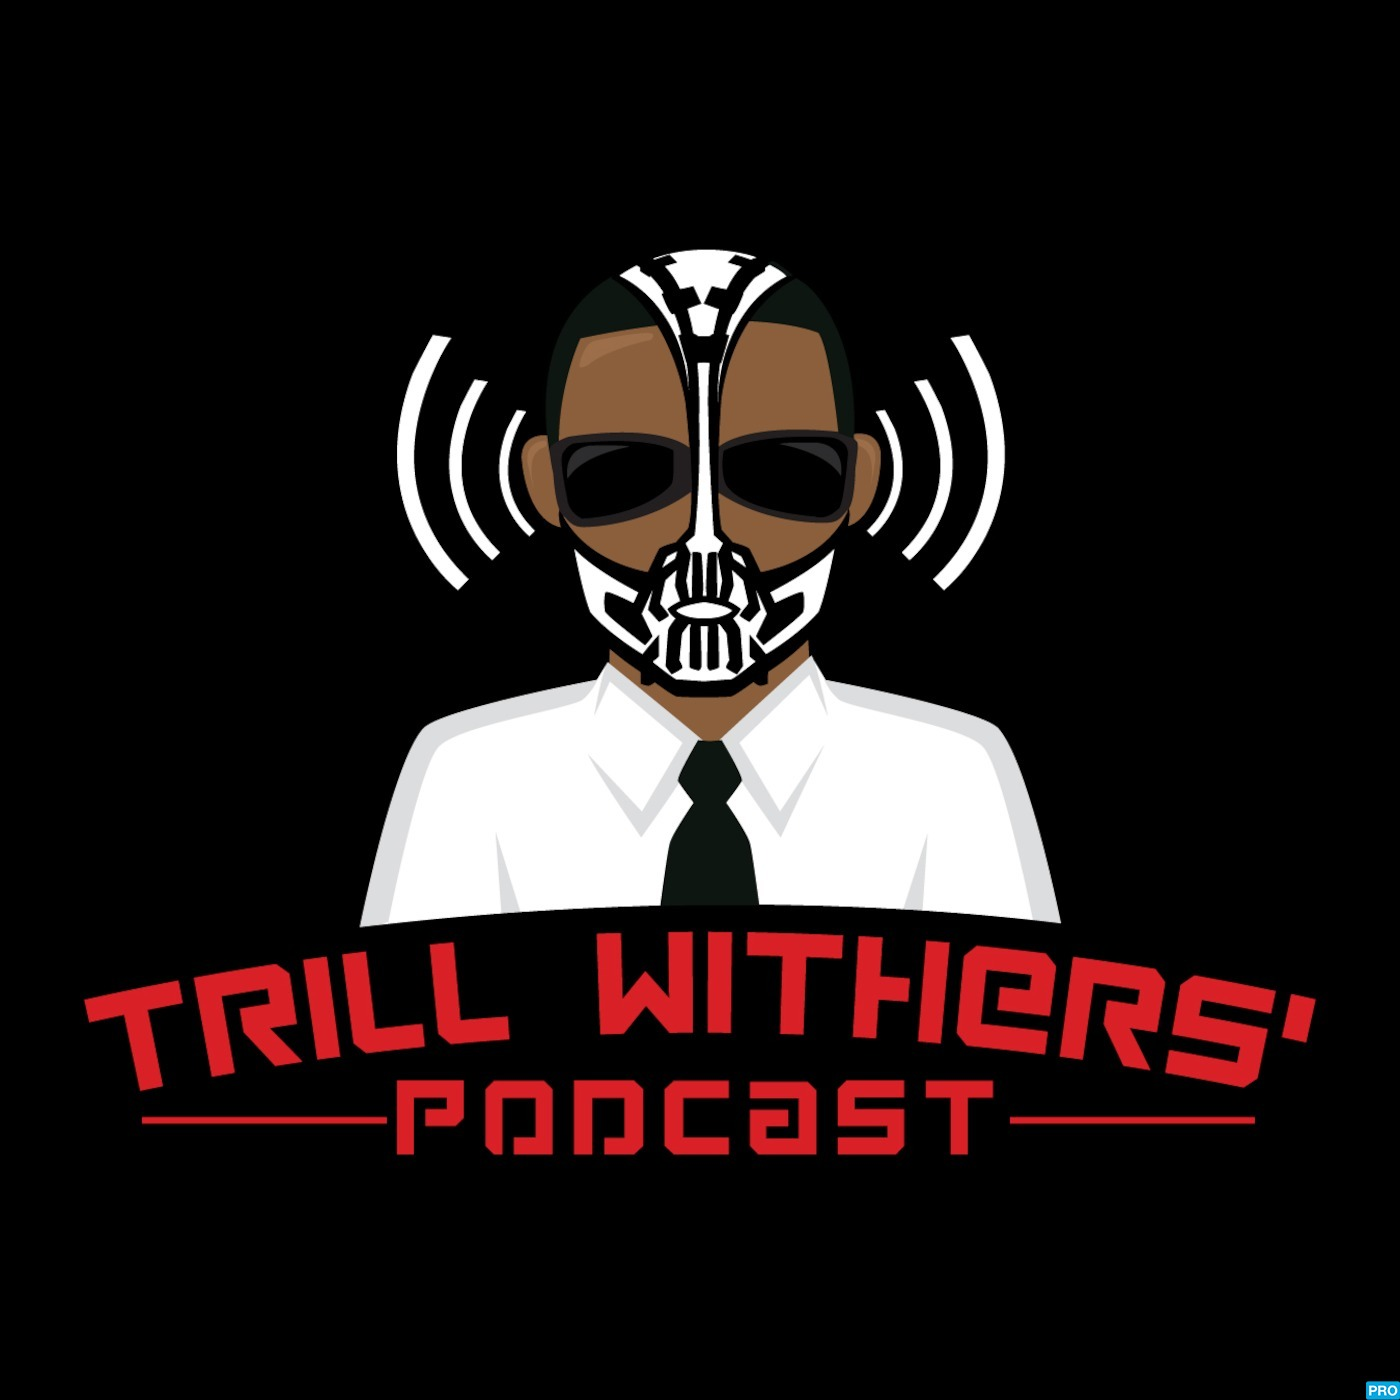 Trill Withers' Podcast